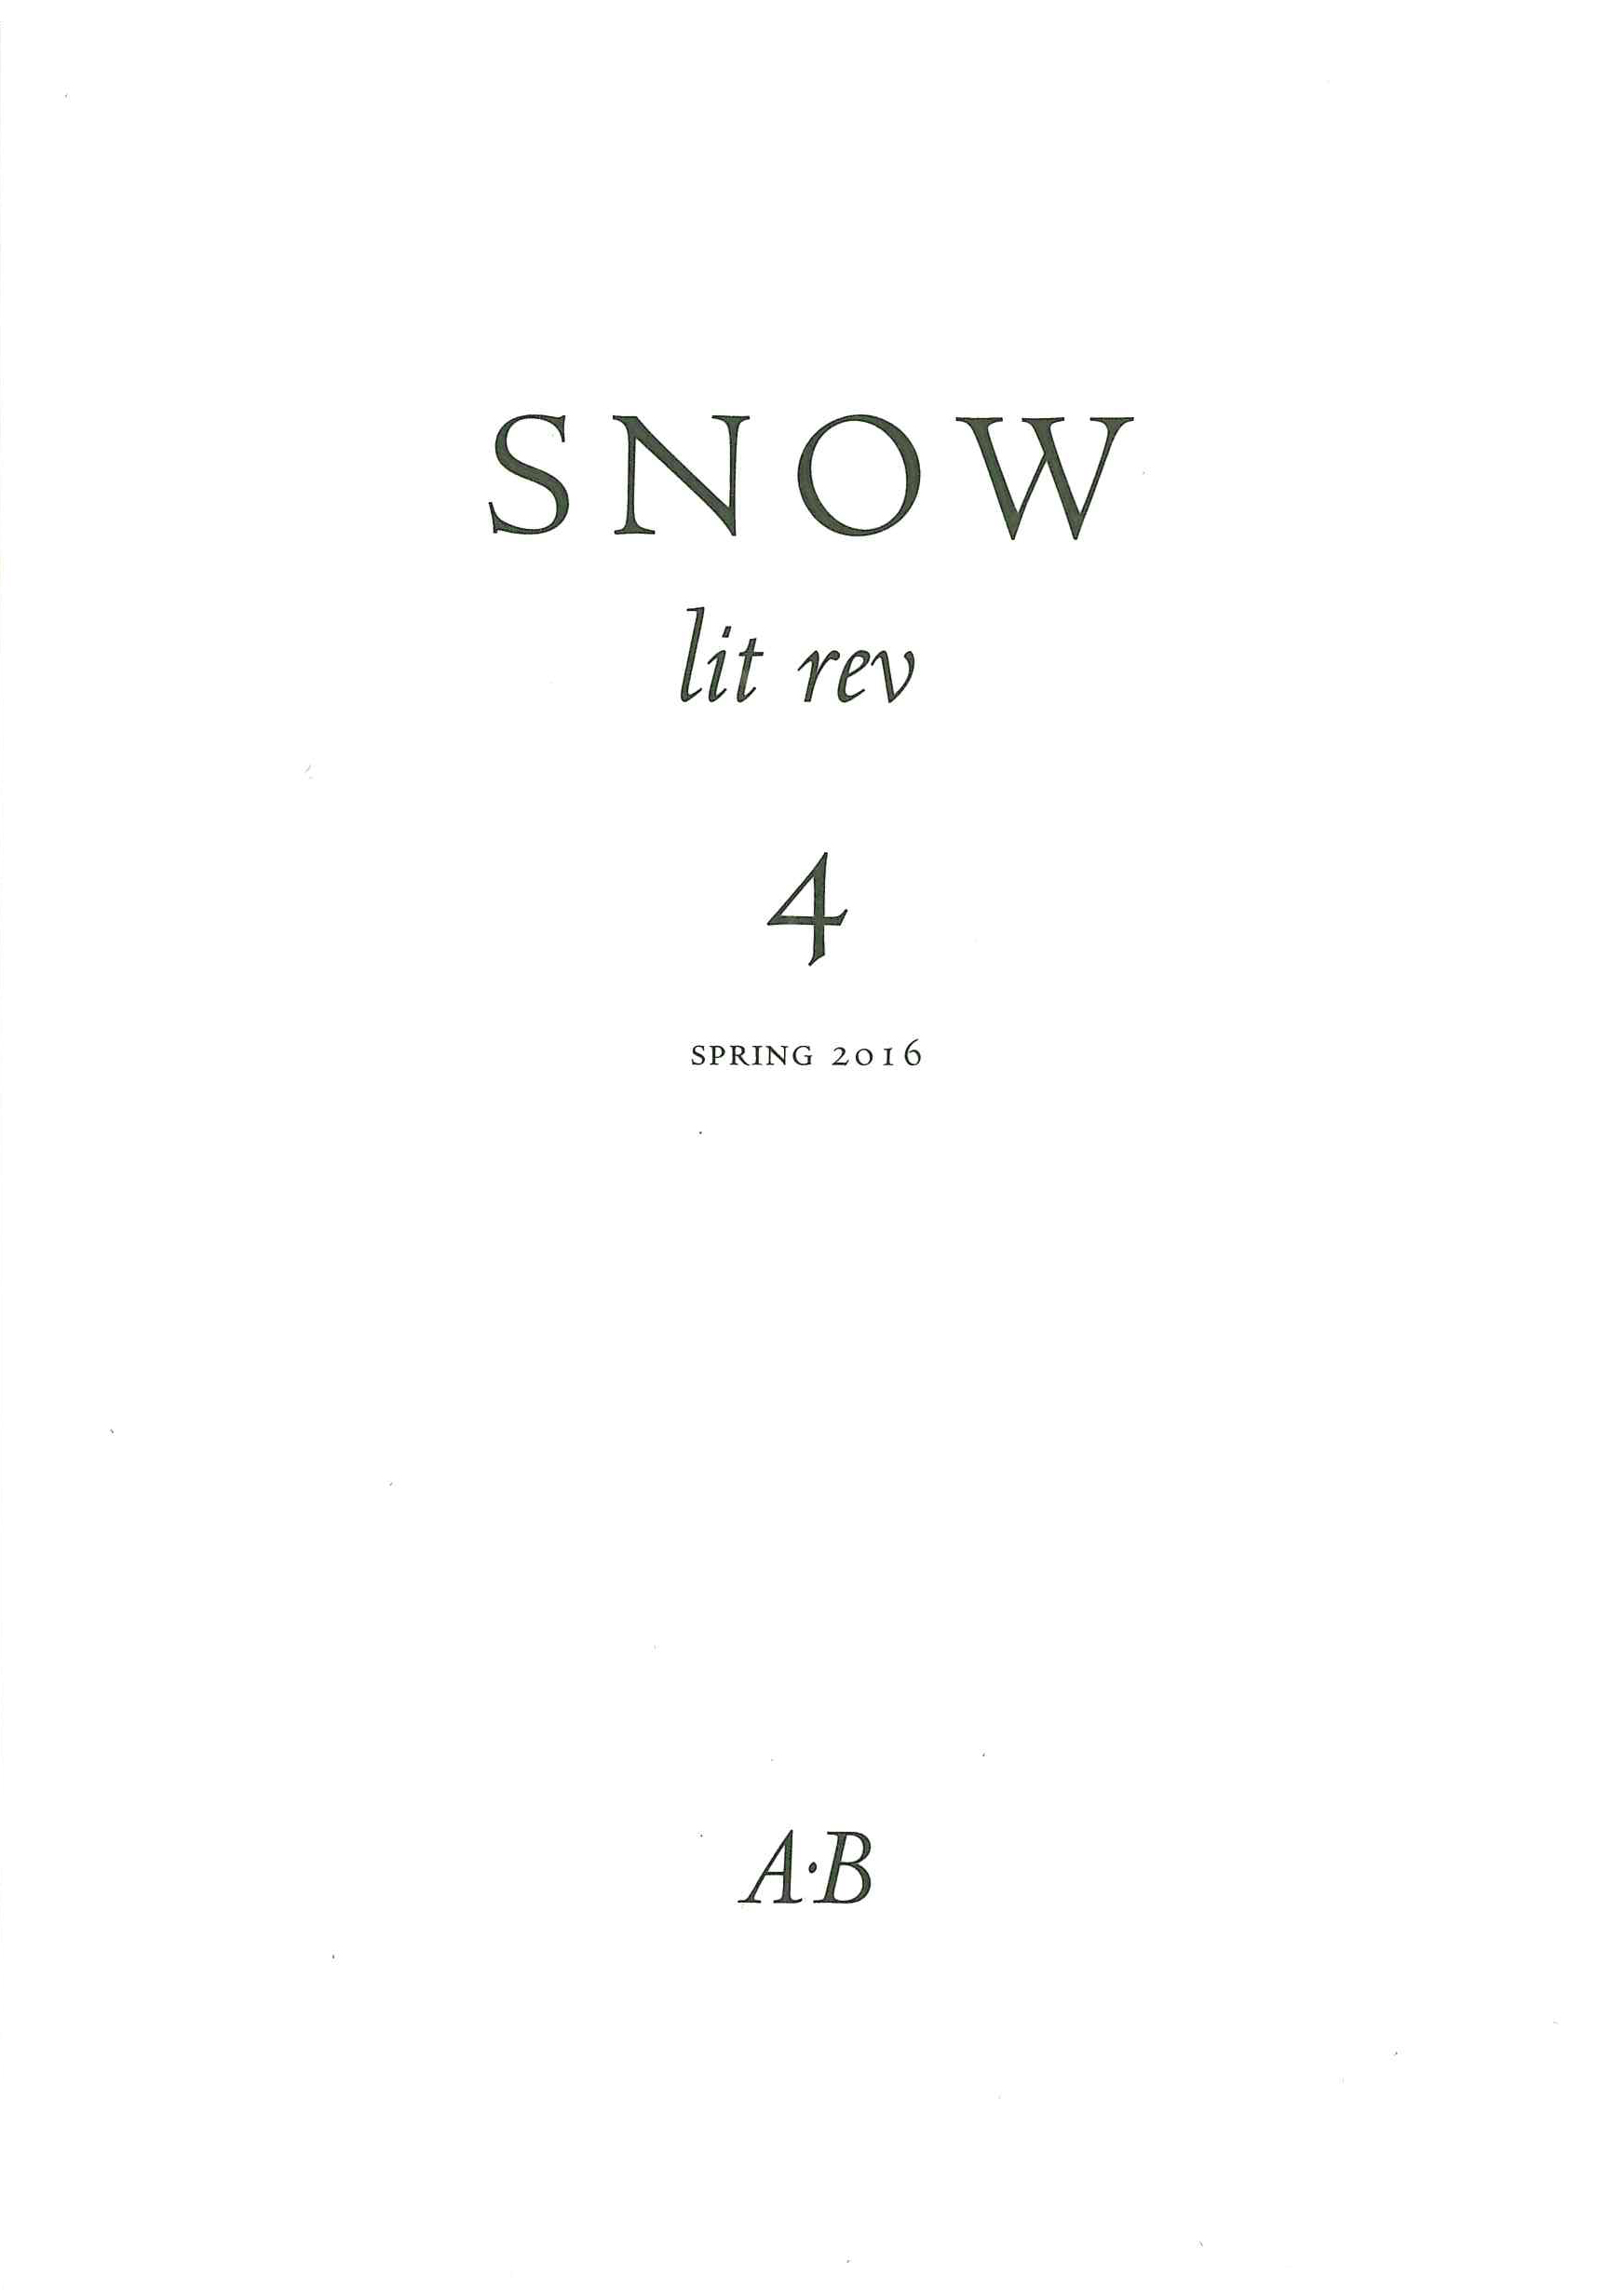 Snow lit rev, no. 4